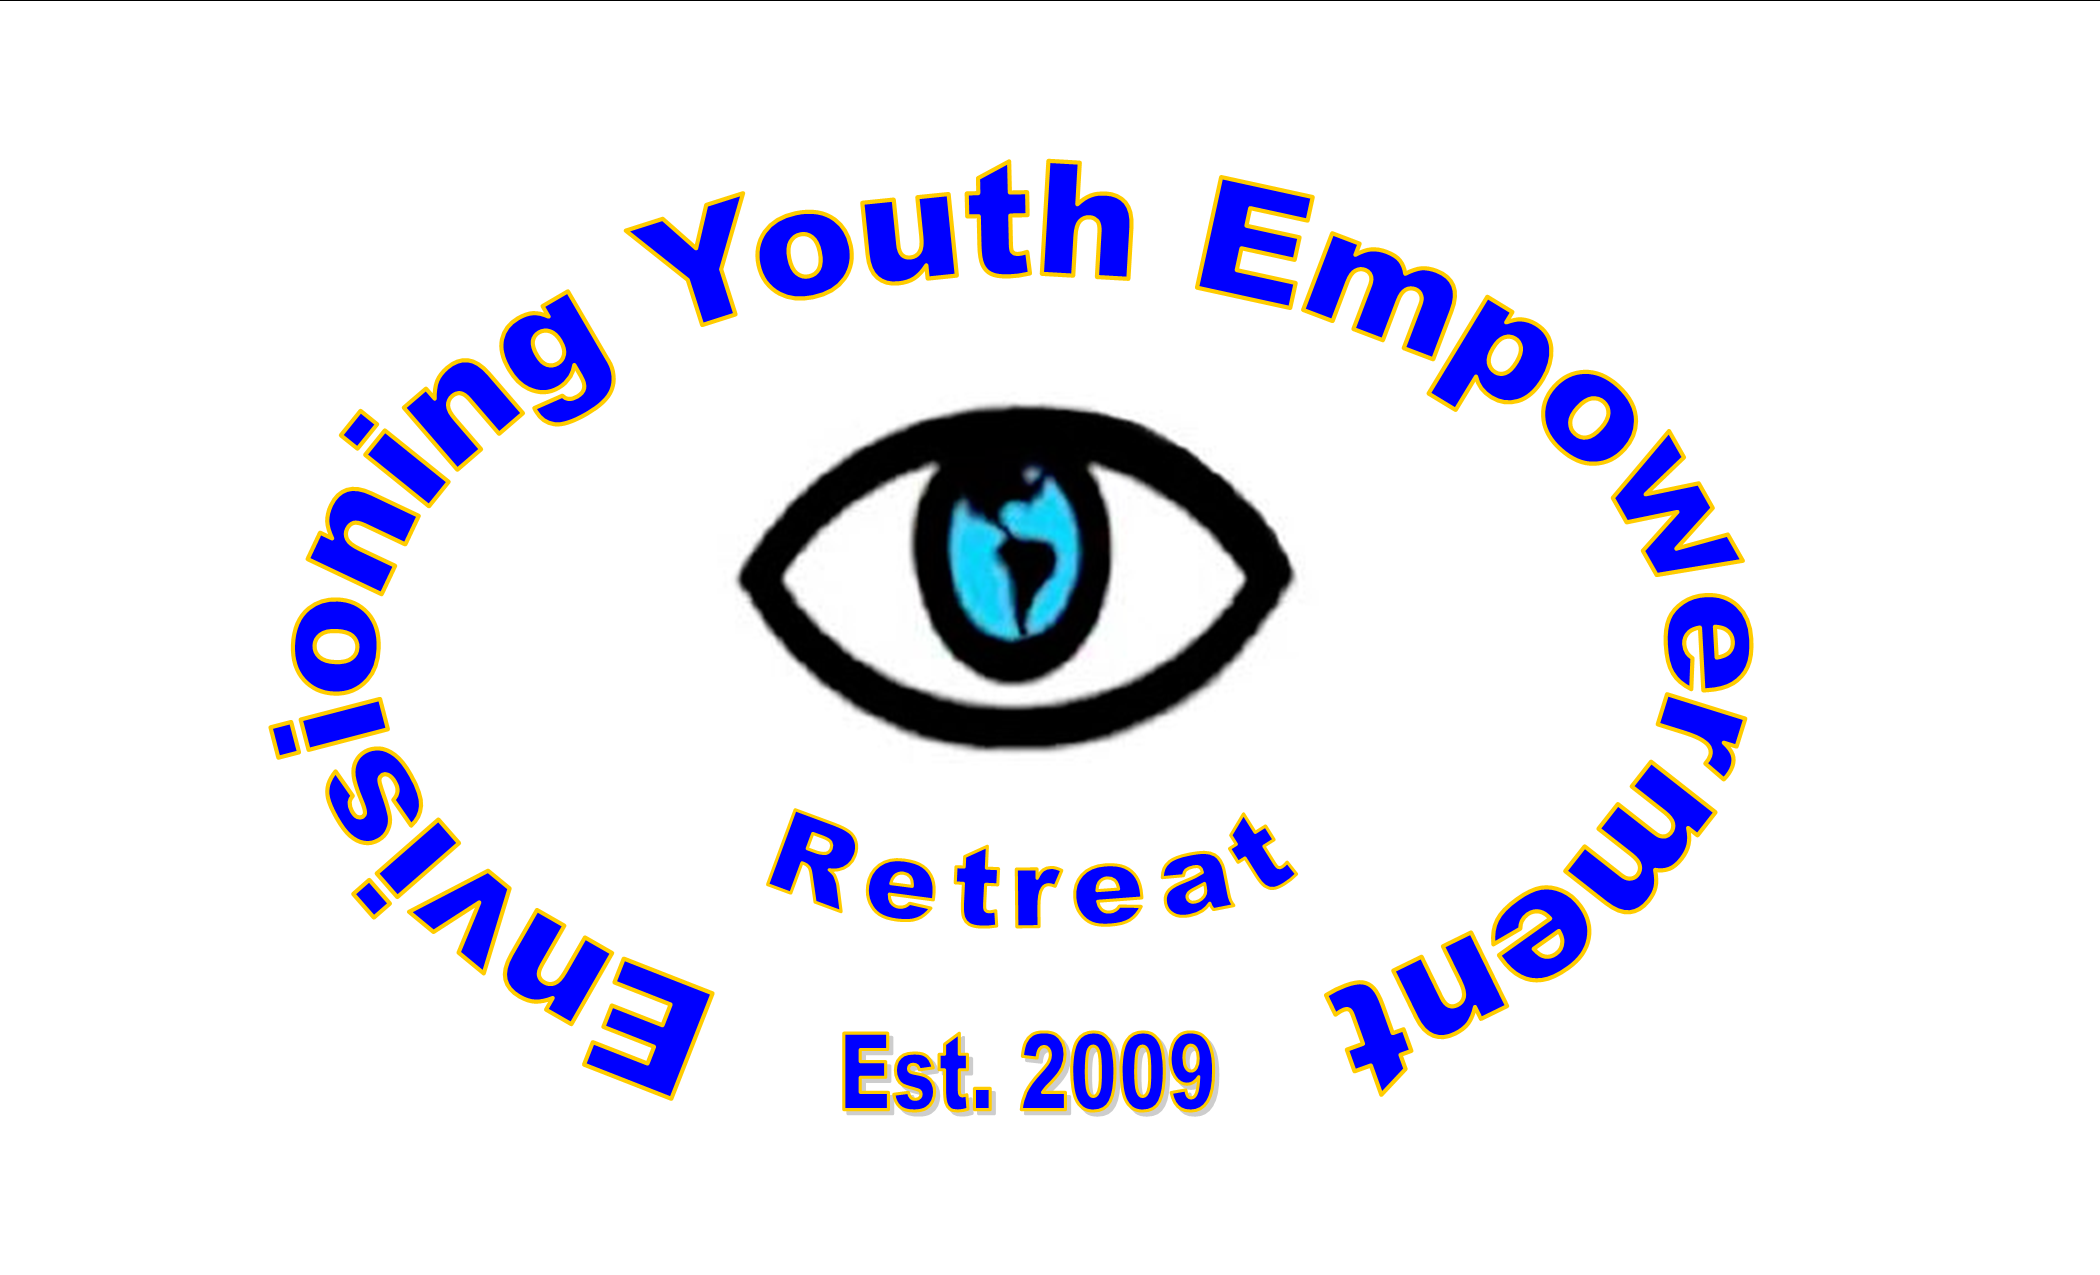 Envisioning Youth Empowerment